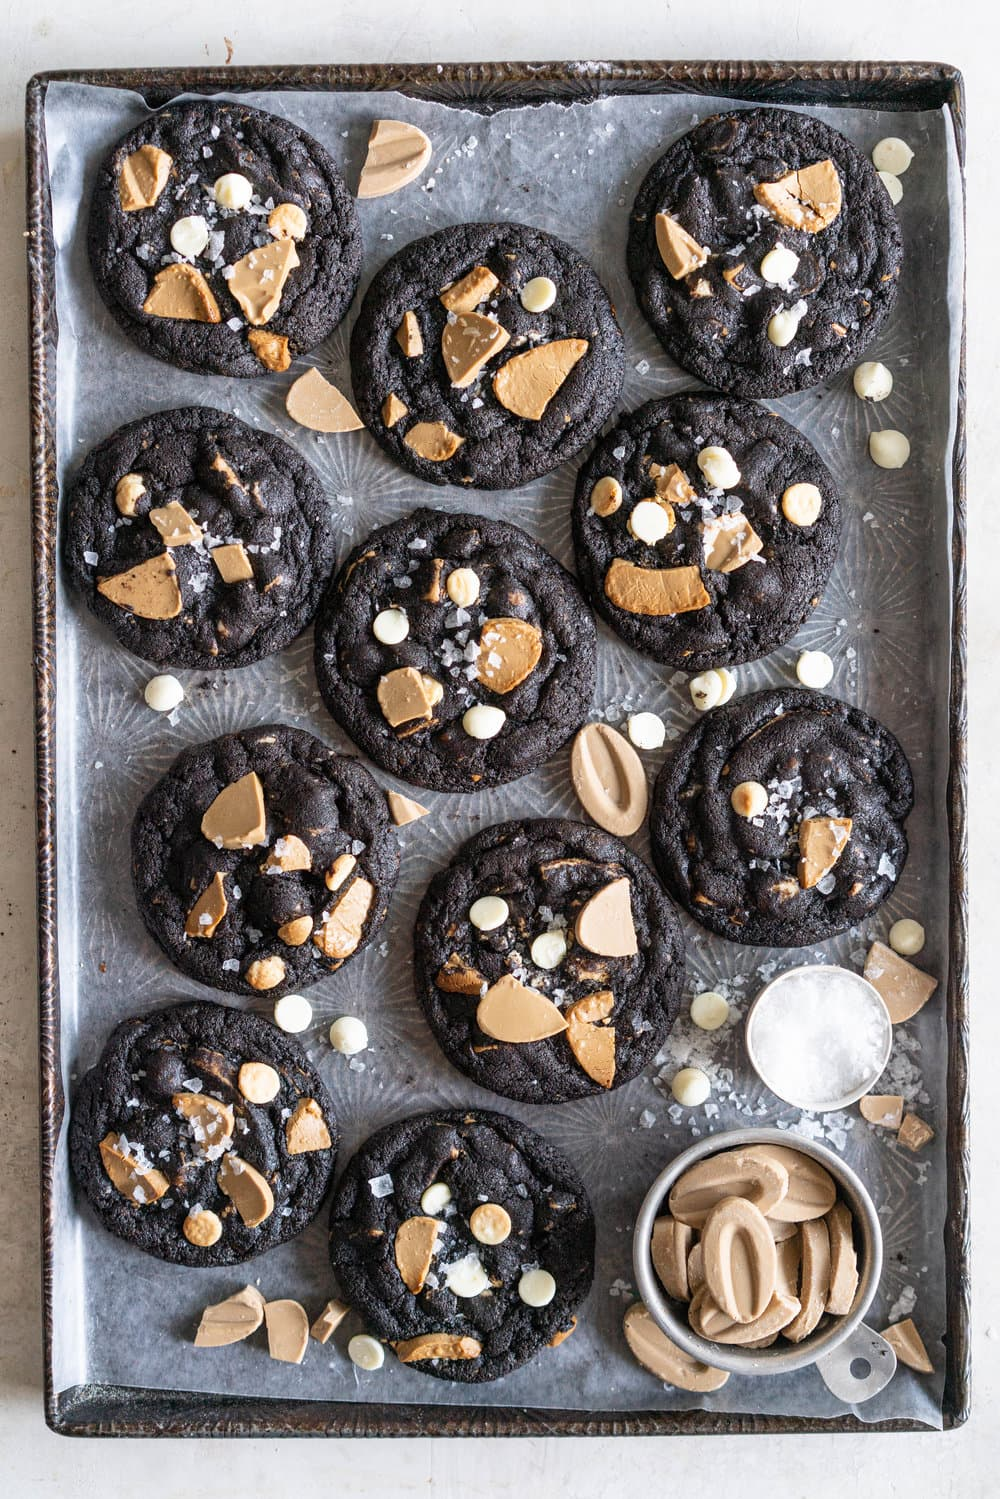 Cookies and Cream Cookies - Black Cocoa Cookies with White Chocolate Chunks. Fudgy, chewy Black cocoa cookies are stuffed full of white chocolate chunks. These are the most perfect cookies and cream cookie, and are so amazing on their own or with a glass of cold milk. #cookies #cookiesandcream #whitechocolate